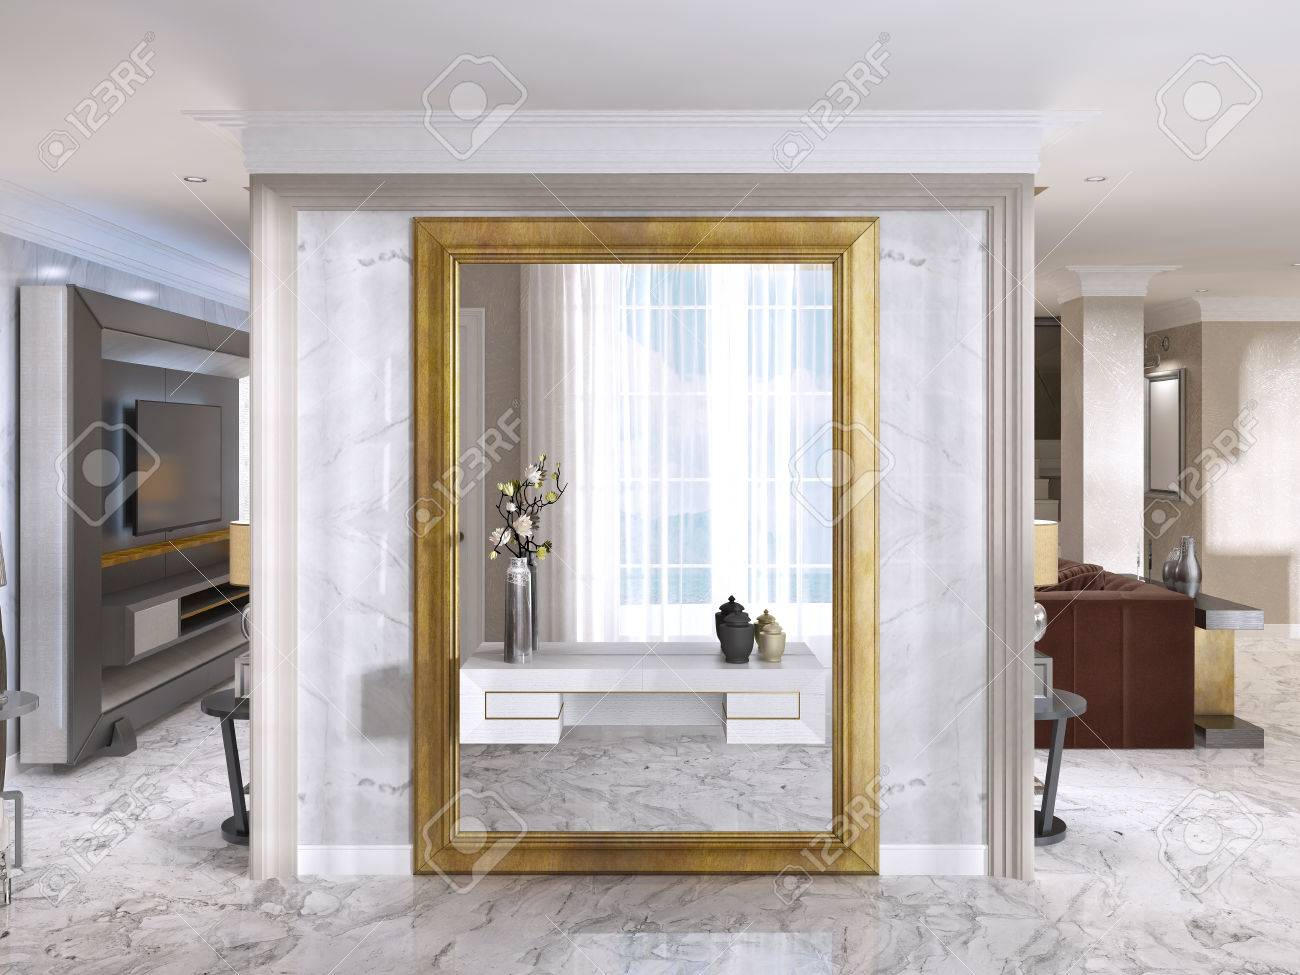 Luxurious art deco entrance hall with a large designer mirror in gold frame and built